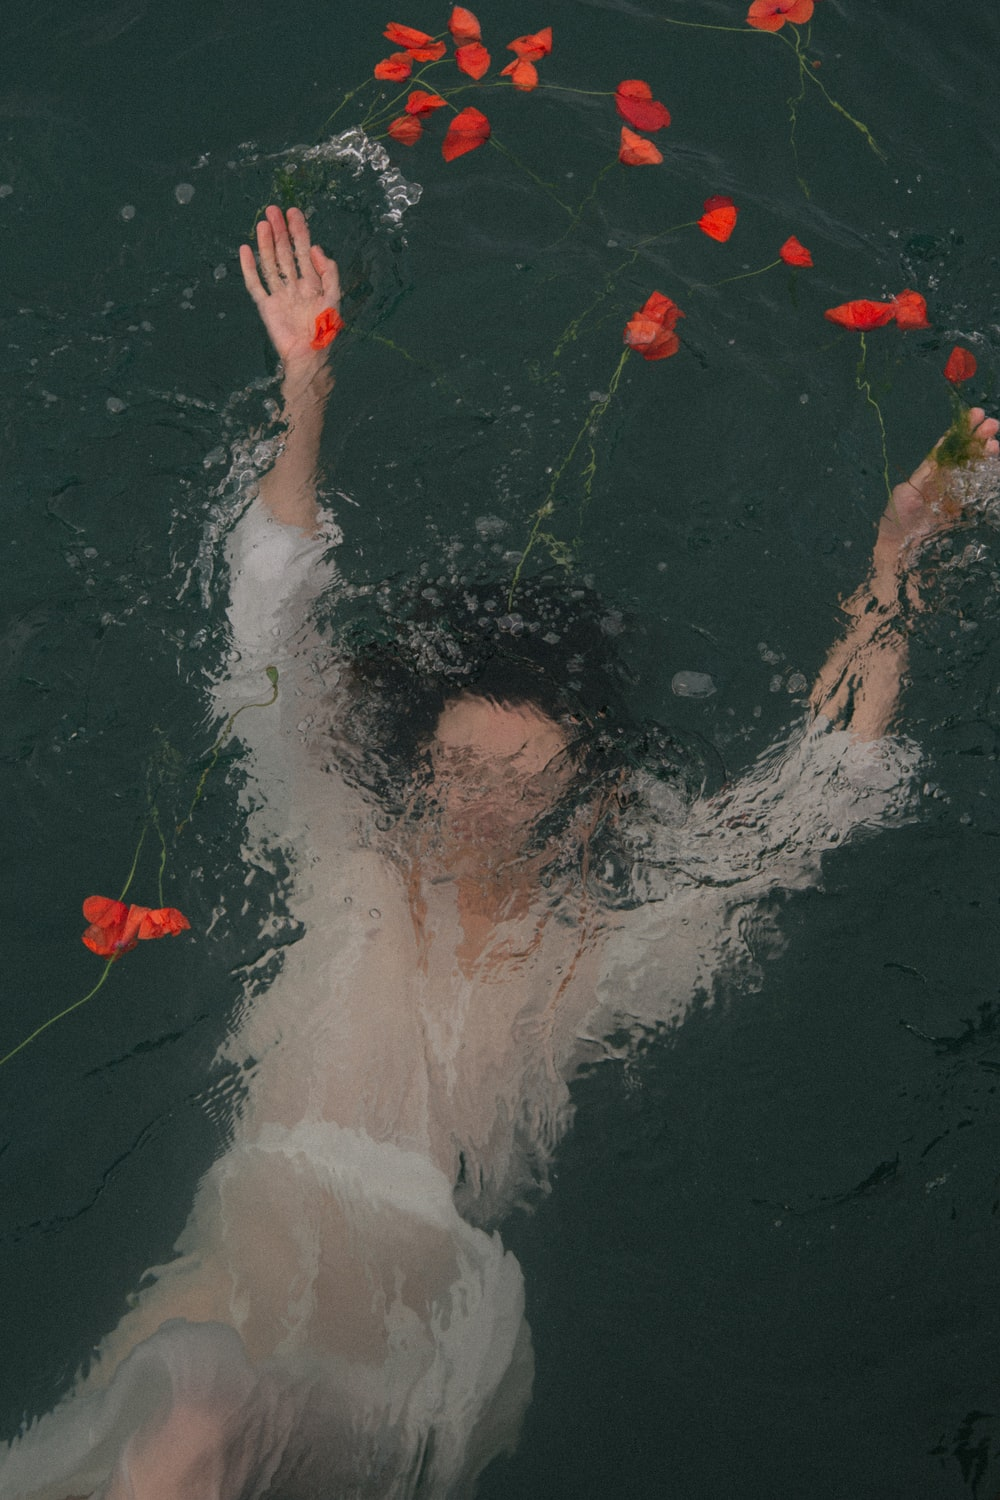 woman in water with red petals